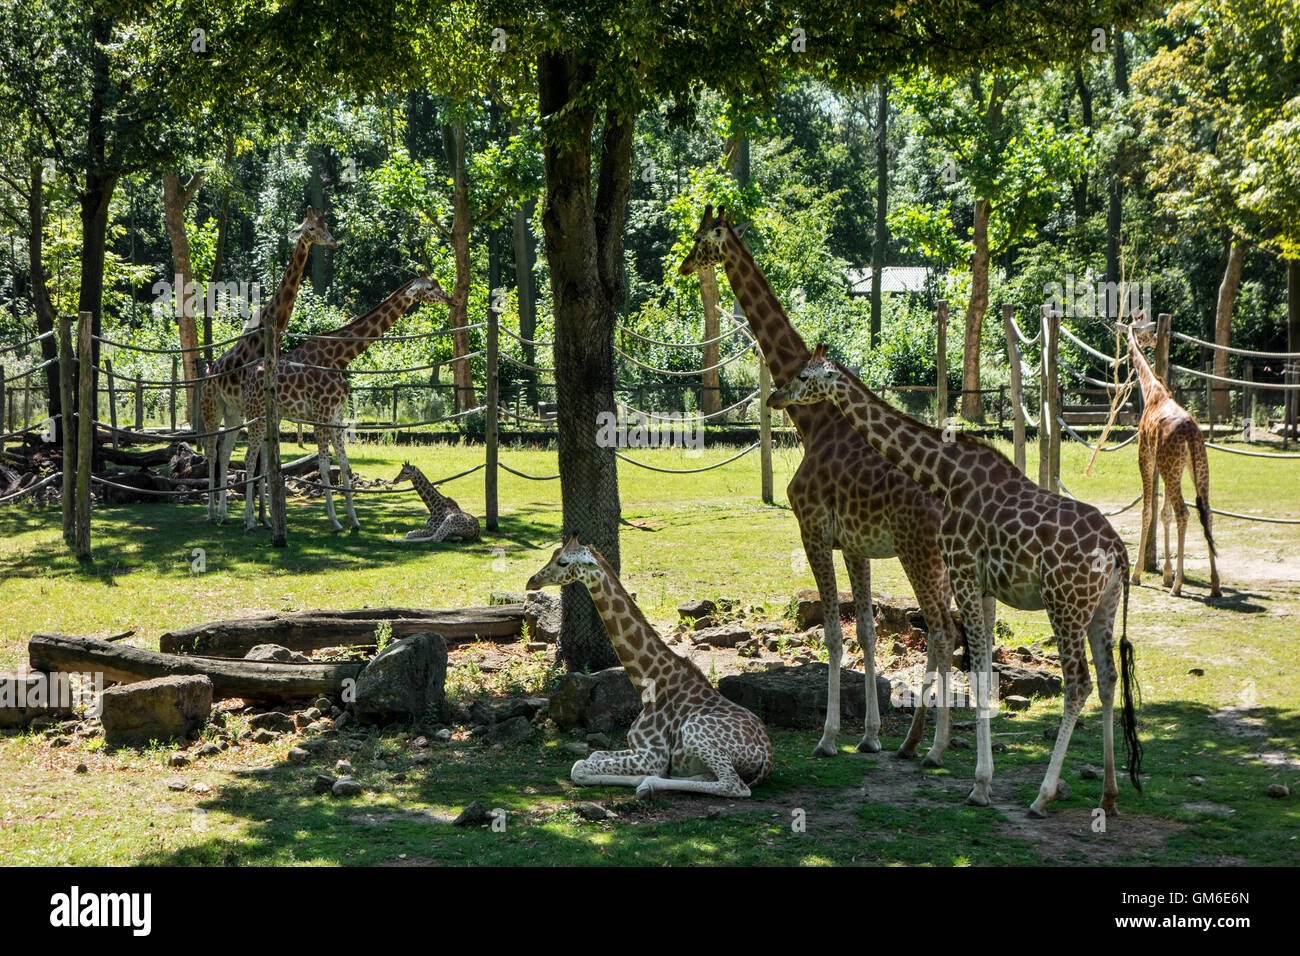 Giraffes with babies in outdoor enclosure in the Planckendael Zoo, Belgium - Stock Image